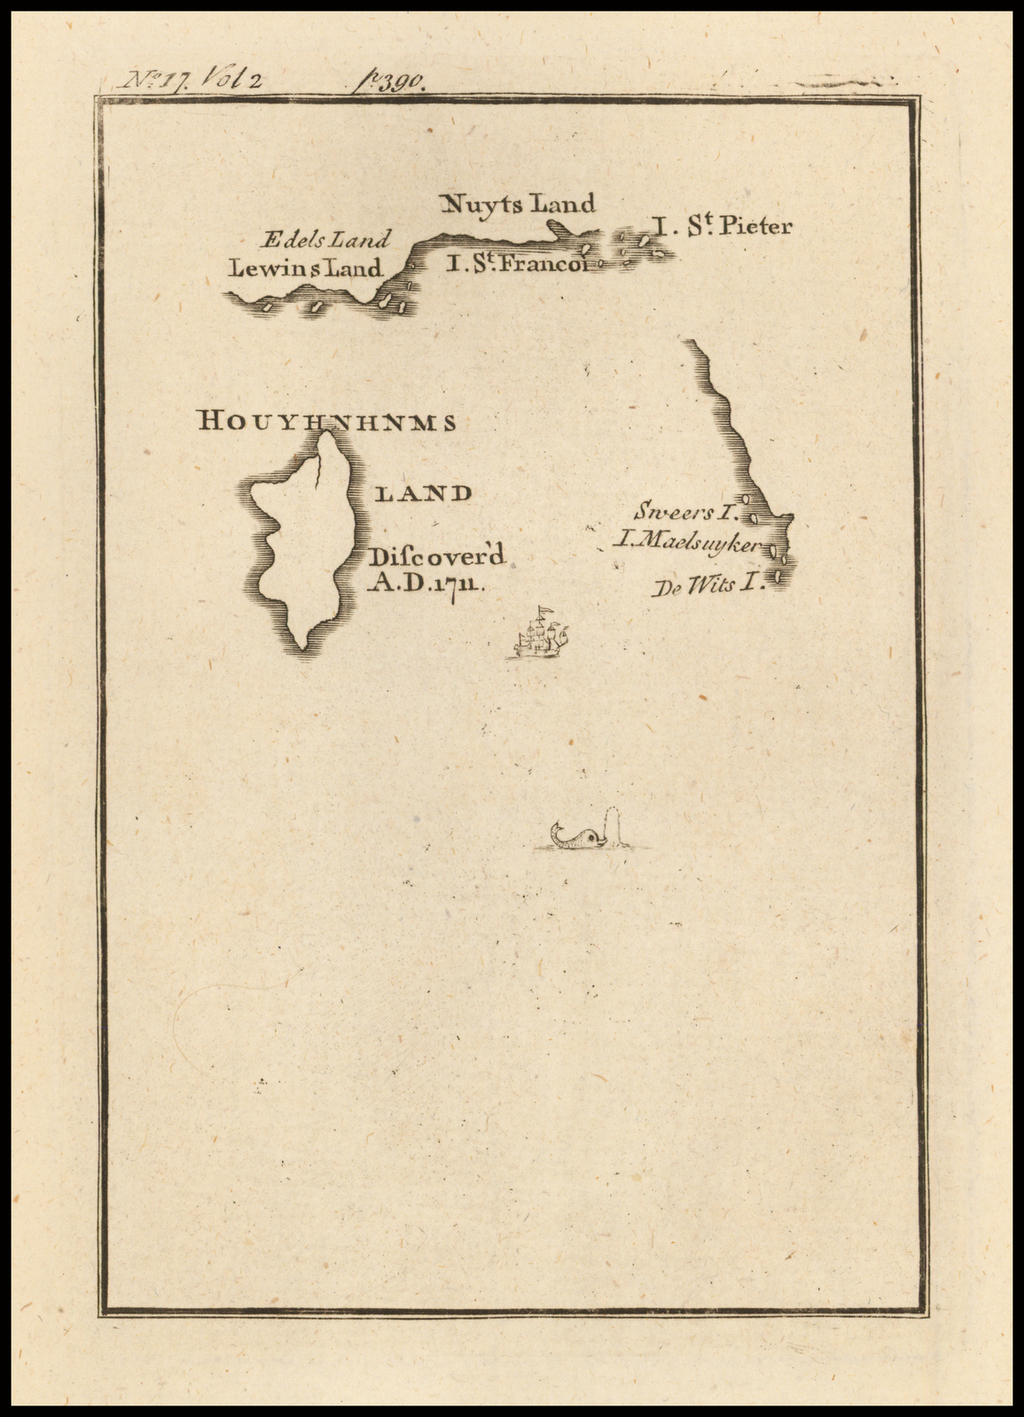 [Australia and Houyhnhnms Land from Gulliver's Travels] By Jonathan Swift